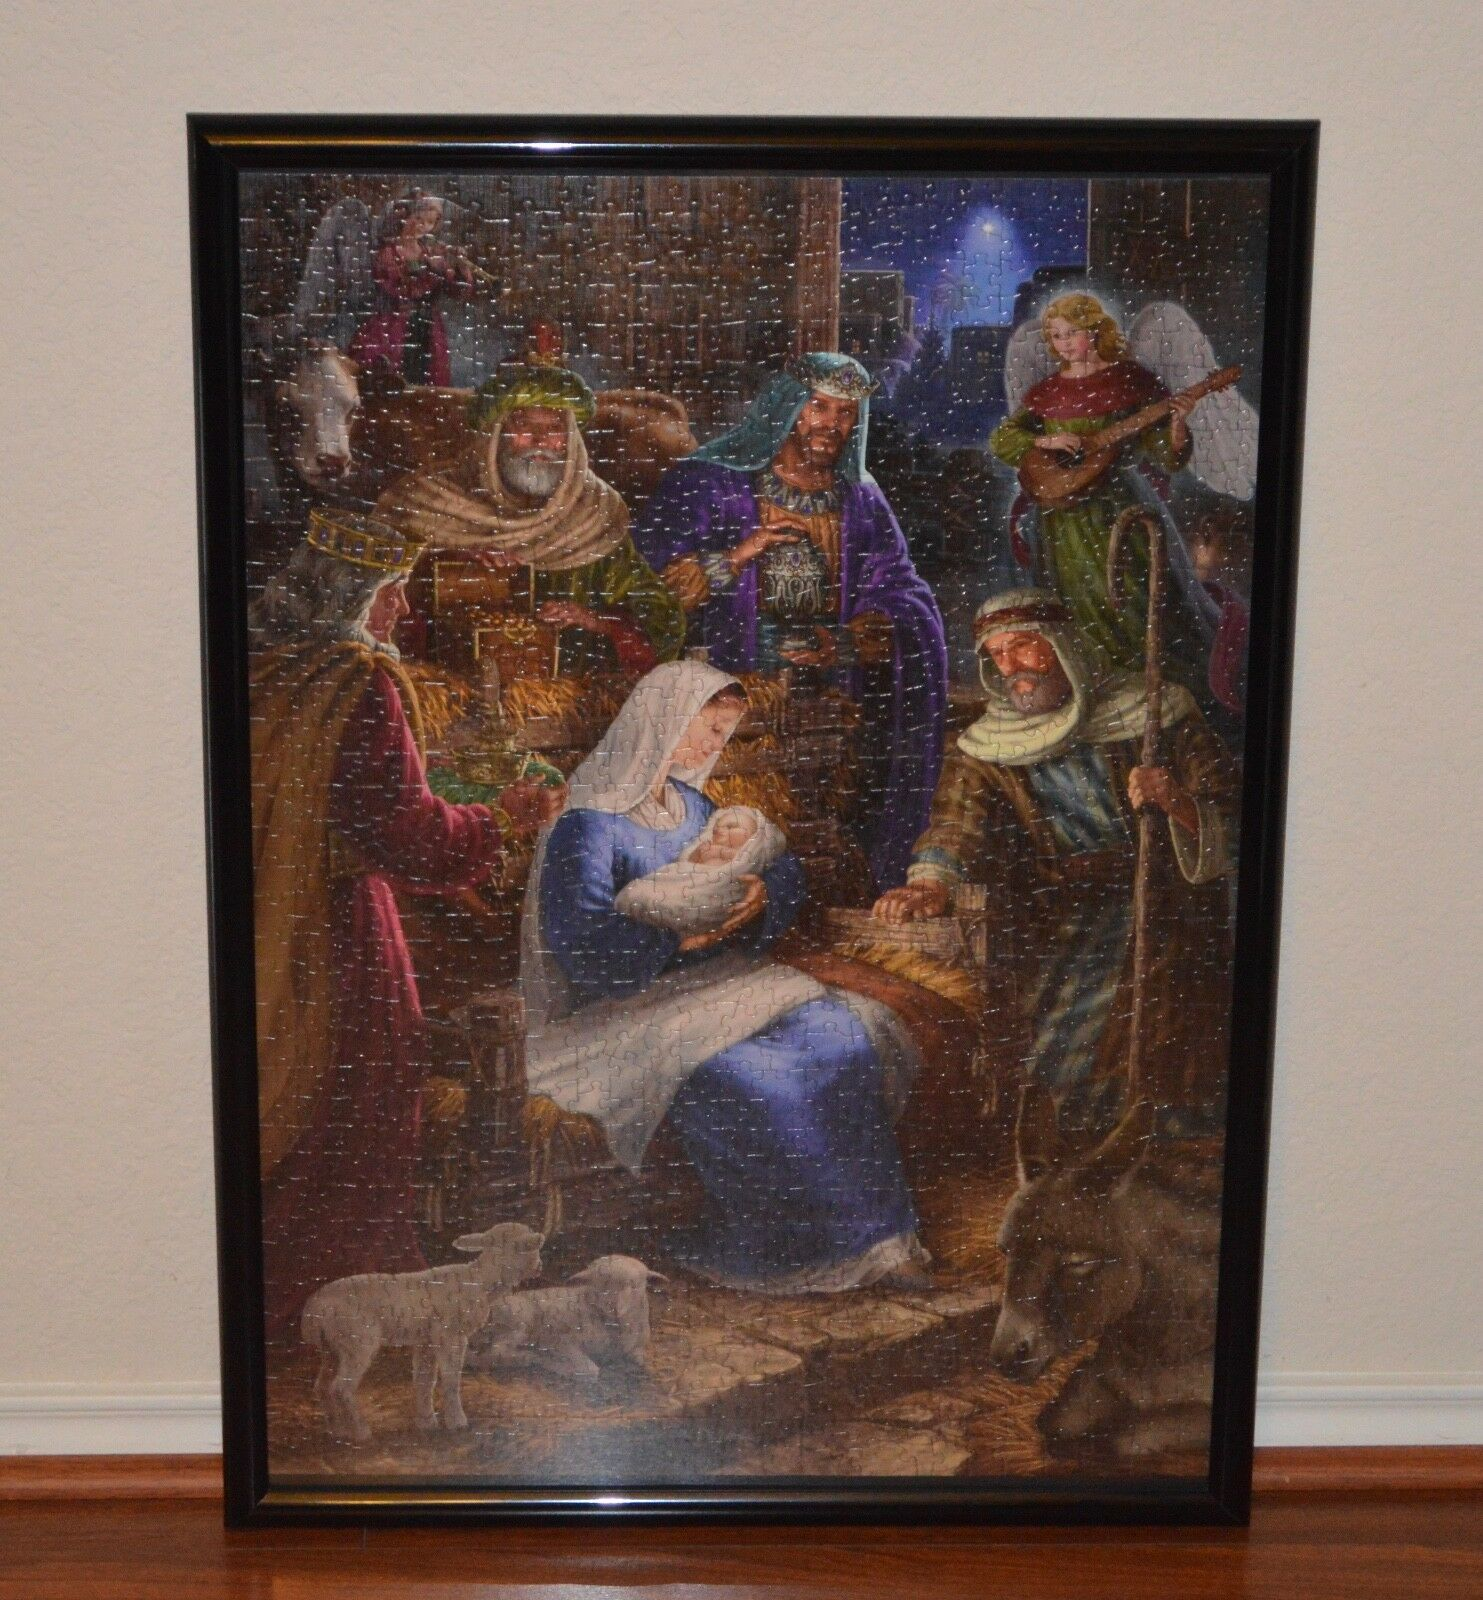 Cobble Hill Holy Night 1,000 Pieces Jigsaw Puzzle Assembled With Frame New